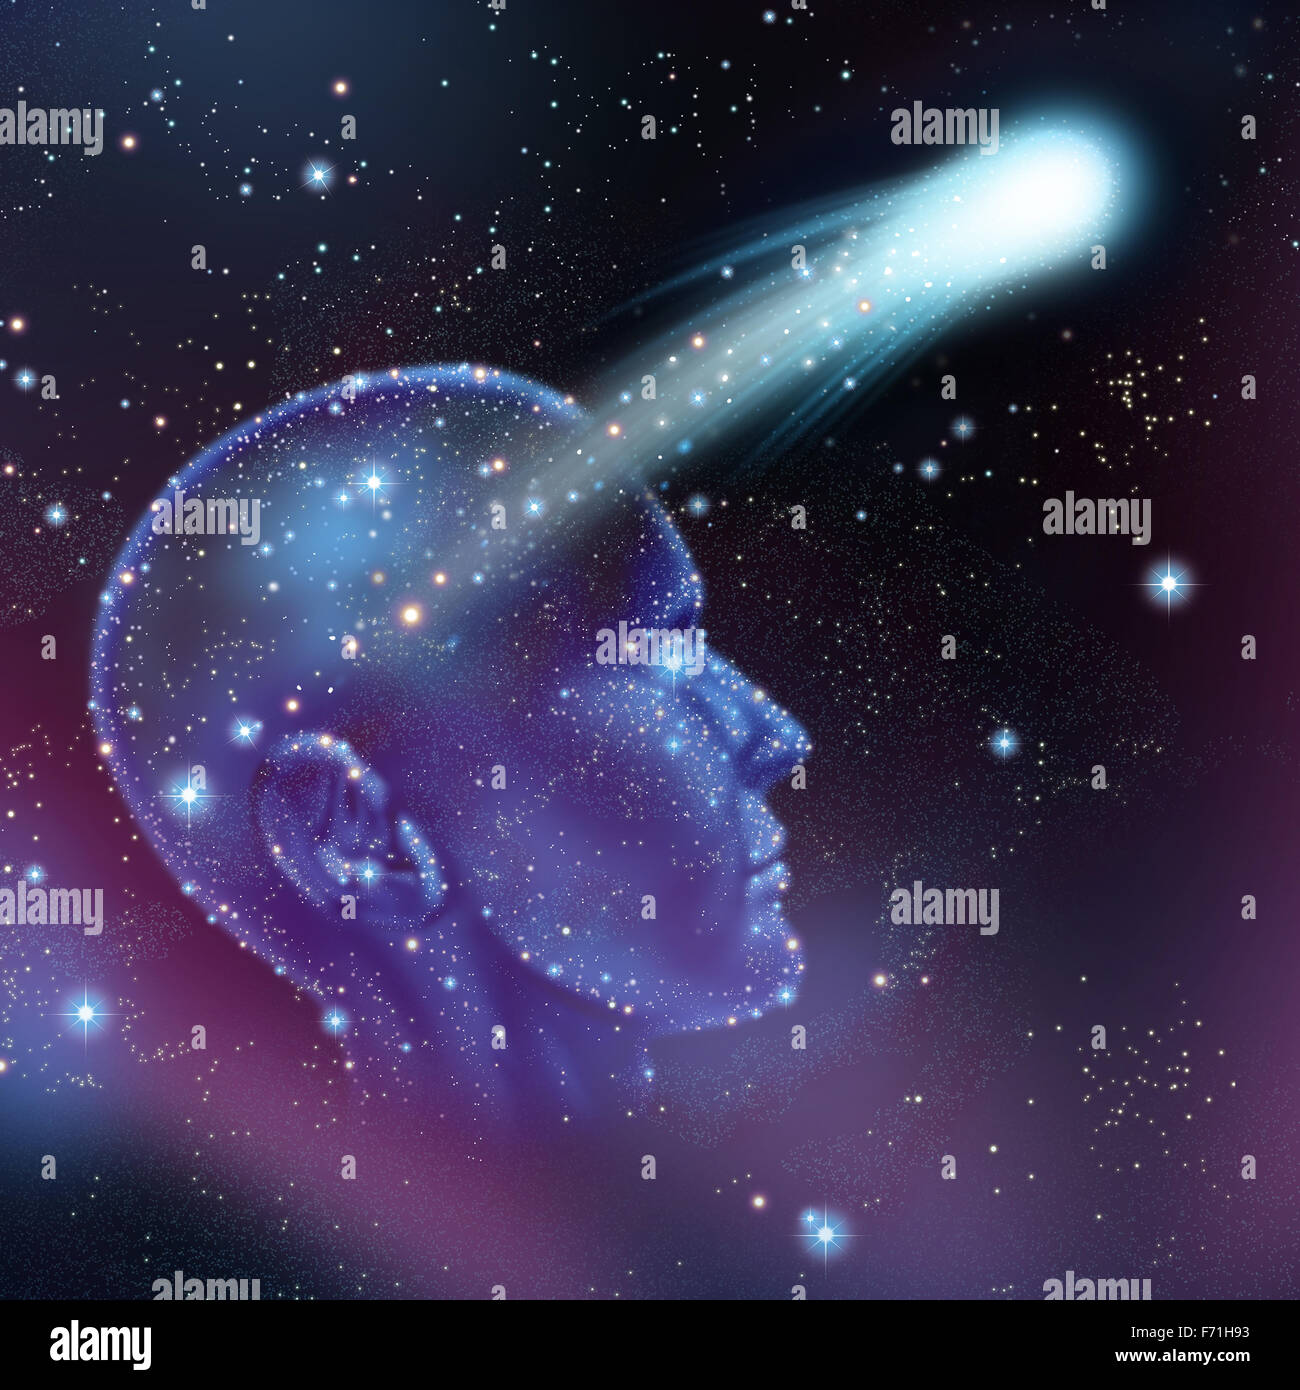 Dreams and imagination concept as a group of stars on a night sky shaped as a human head with a shooting star flying - Stock Image